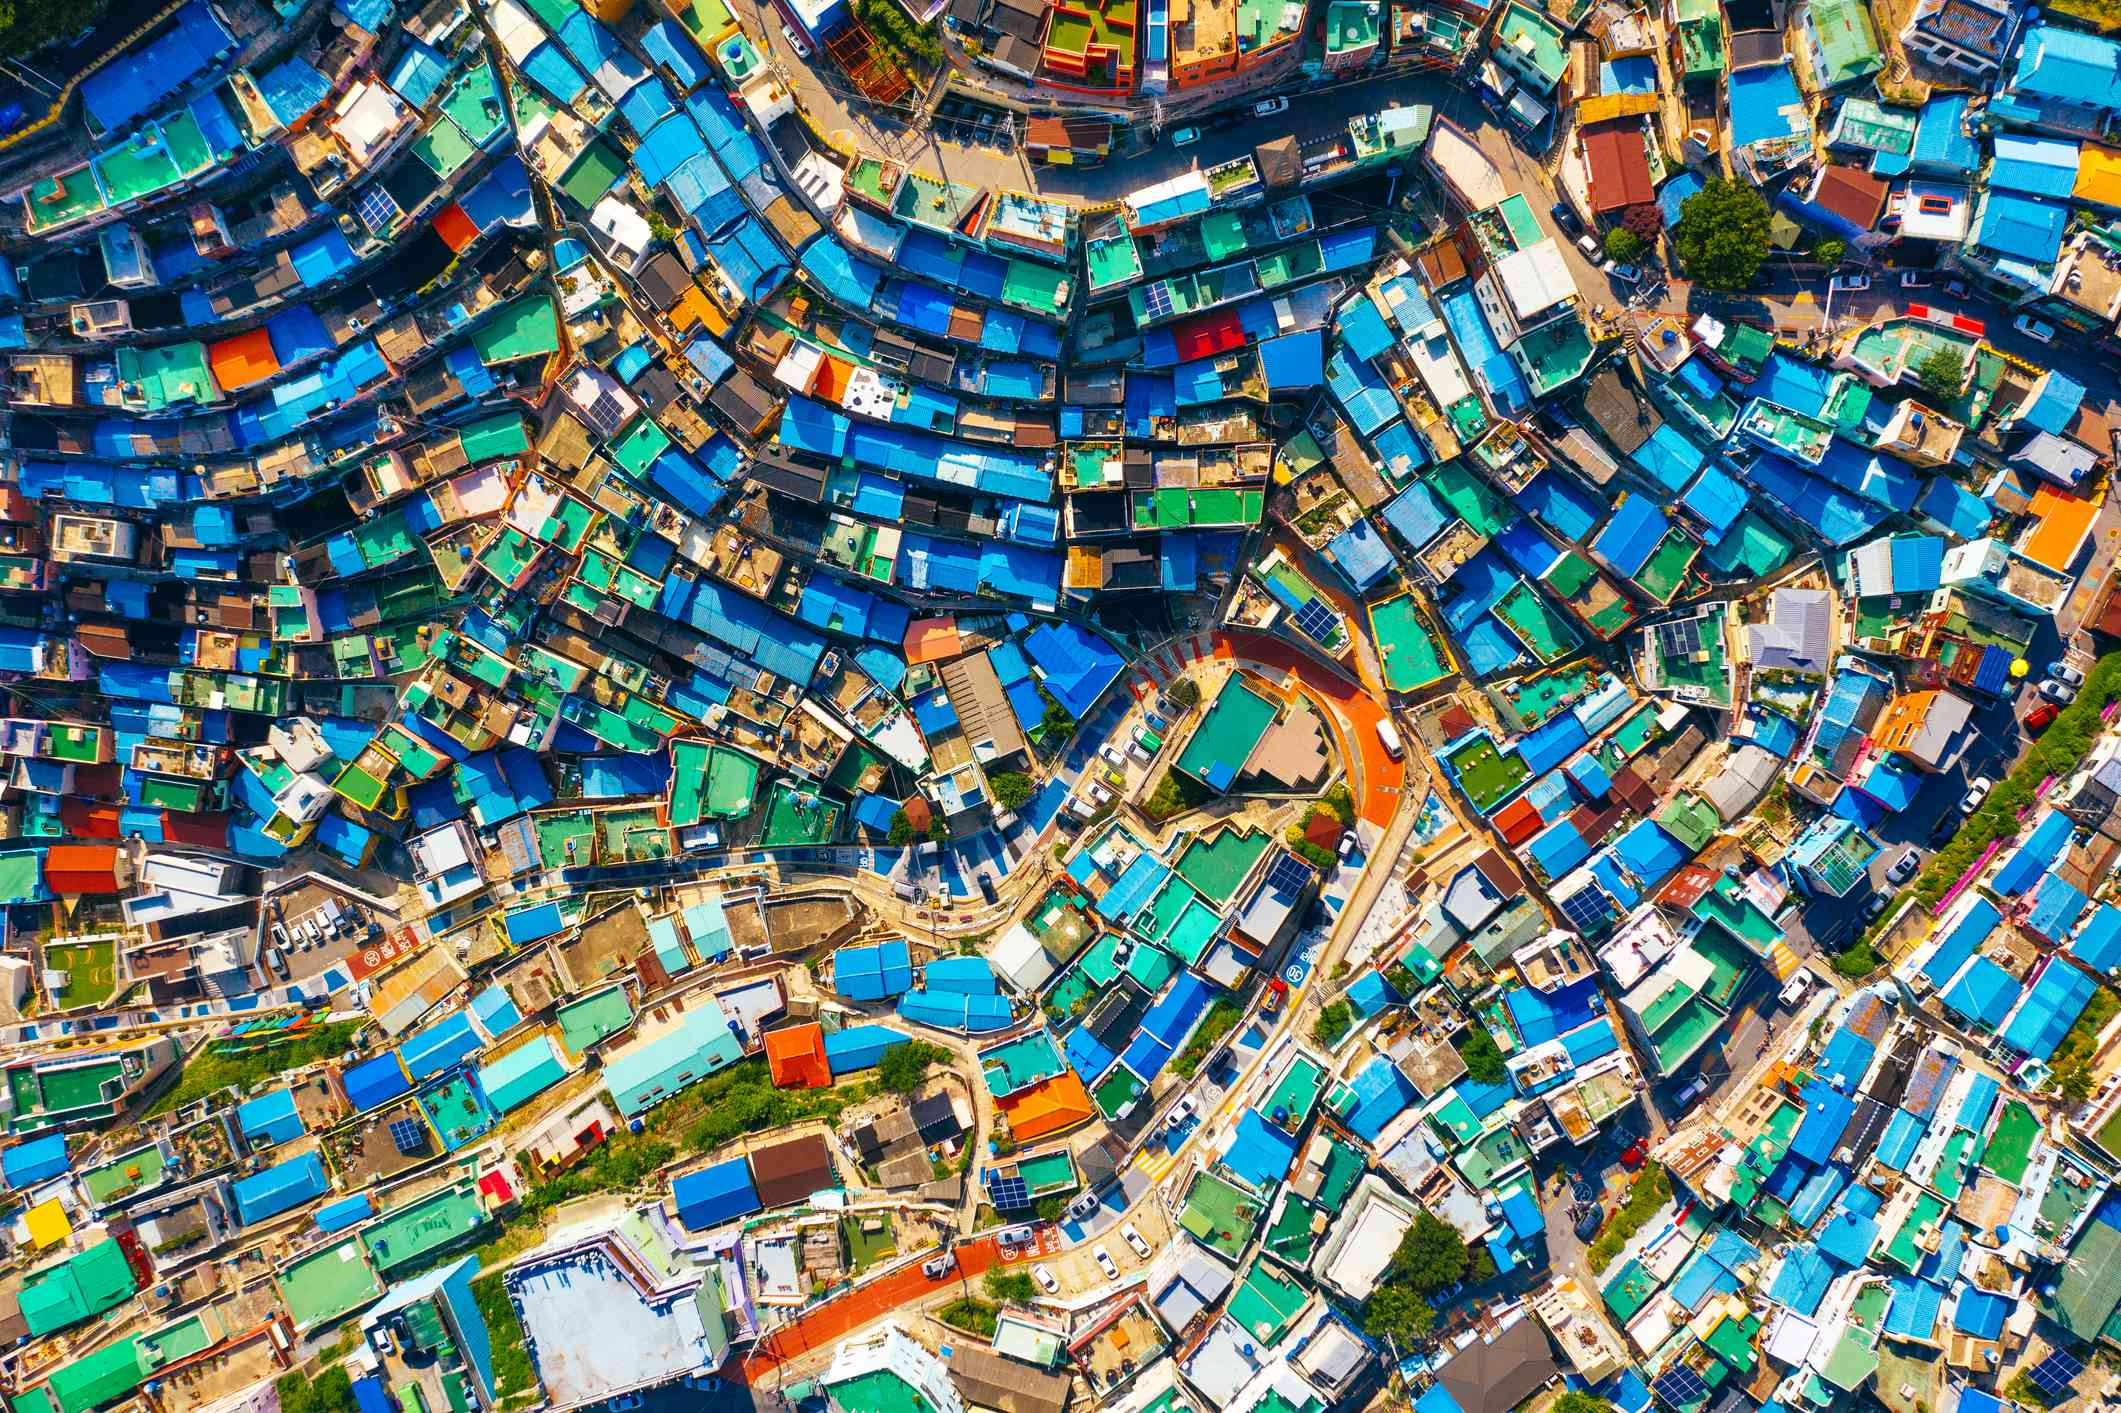 Aerial view of Gamcheon Culture Village in Busan, South Korea